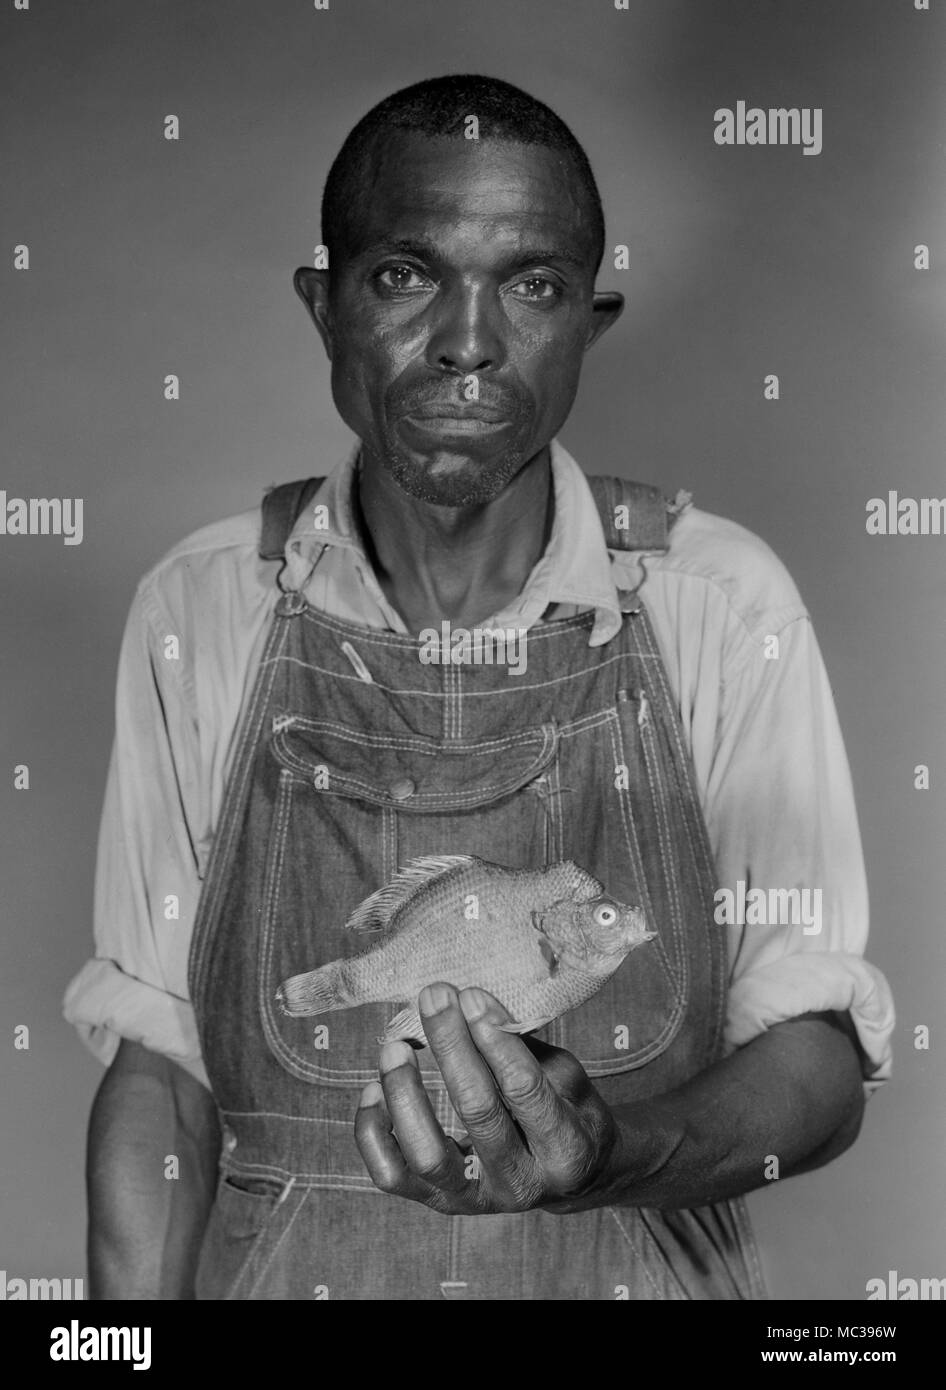 A man displays an odd looking fish he caught — possibly a longear sunfish — in Georgia, cal 1963. - Stock Image